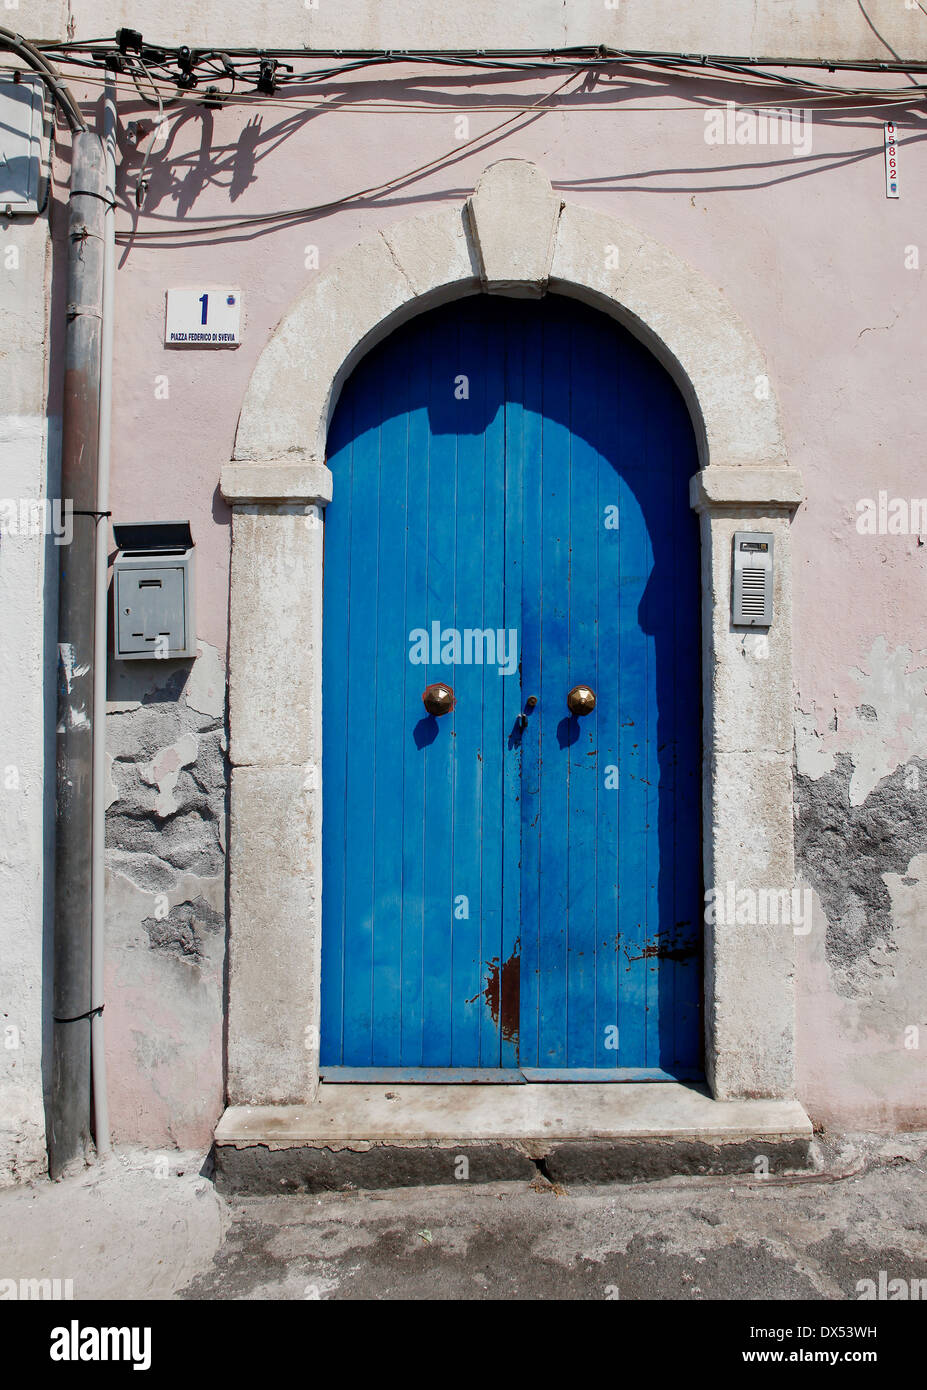 A blue door with mailbox, number 1 and entry phone - Stock Image